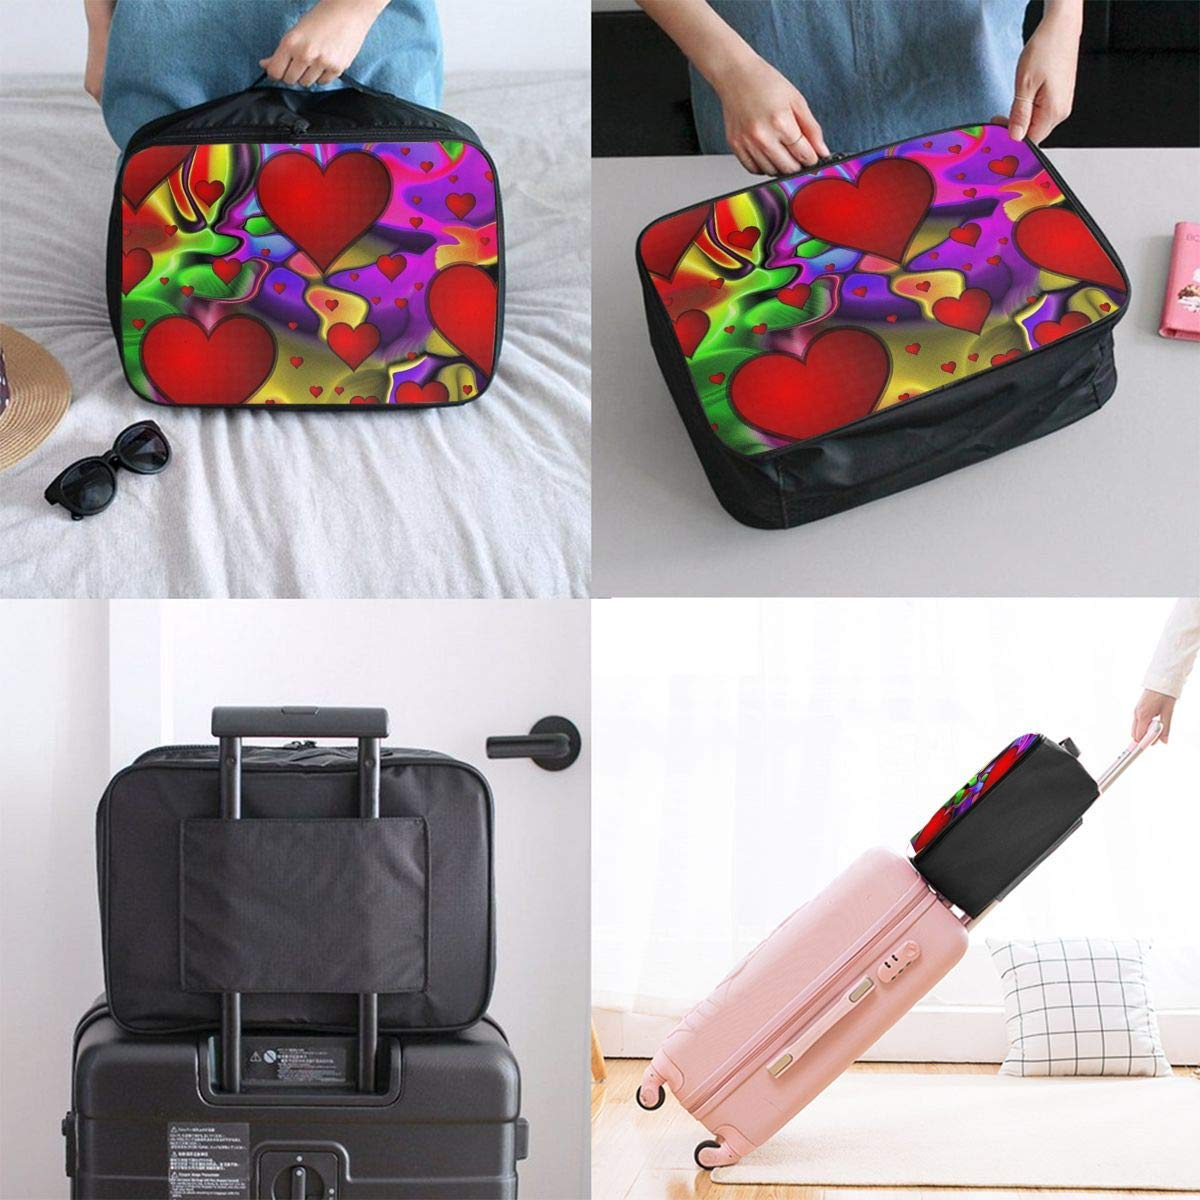 Foldable Travel Bag Travel Duffle Bag Lightweight Waterproof Travel Luggage Bag Love Colorful-abstract Paint JTRVW Luggage Bags for Travel